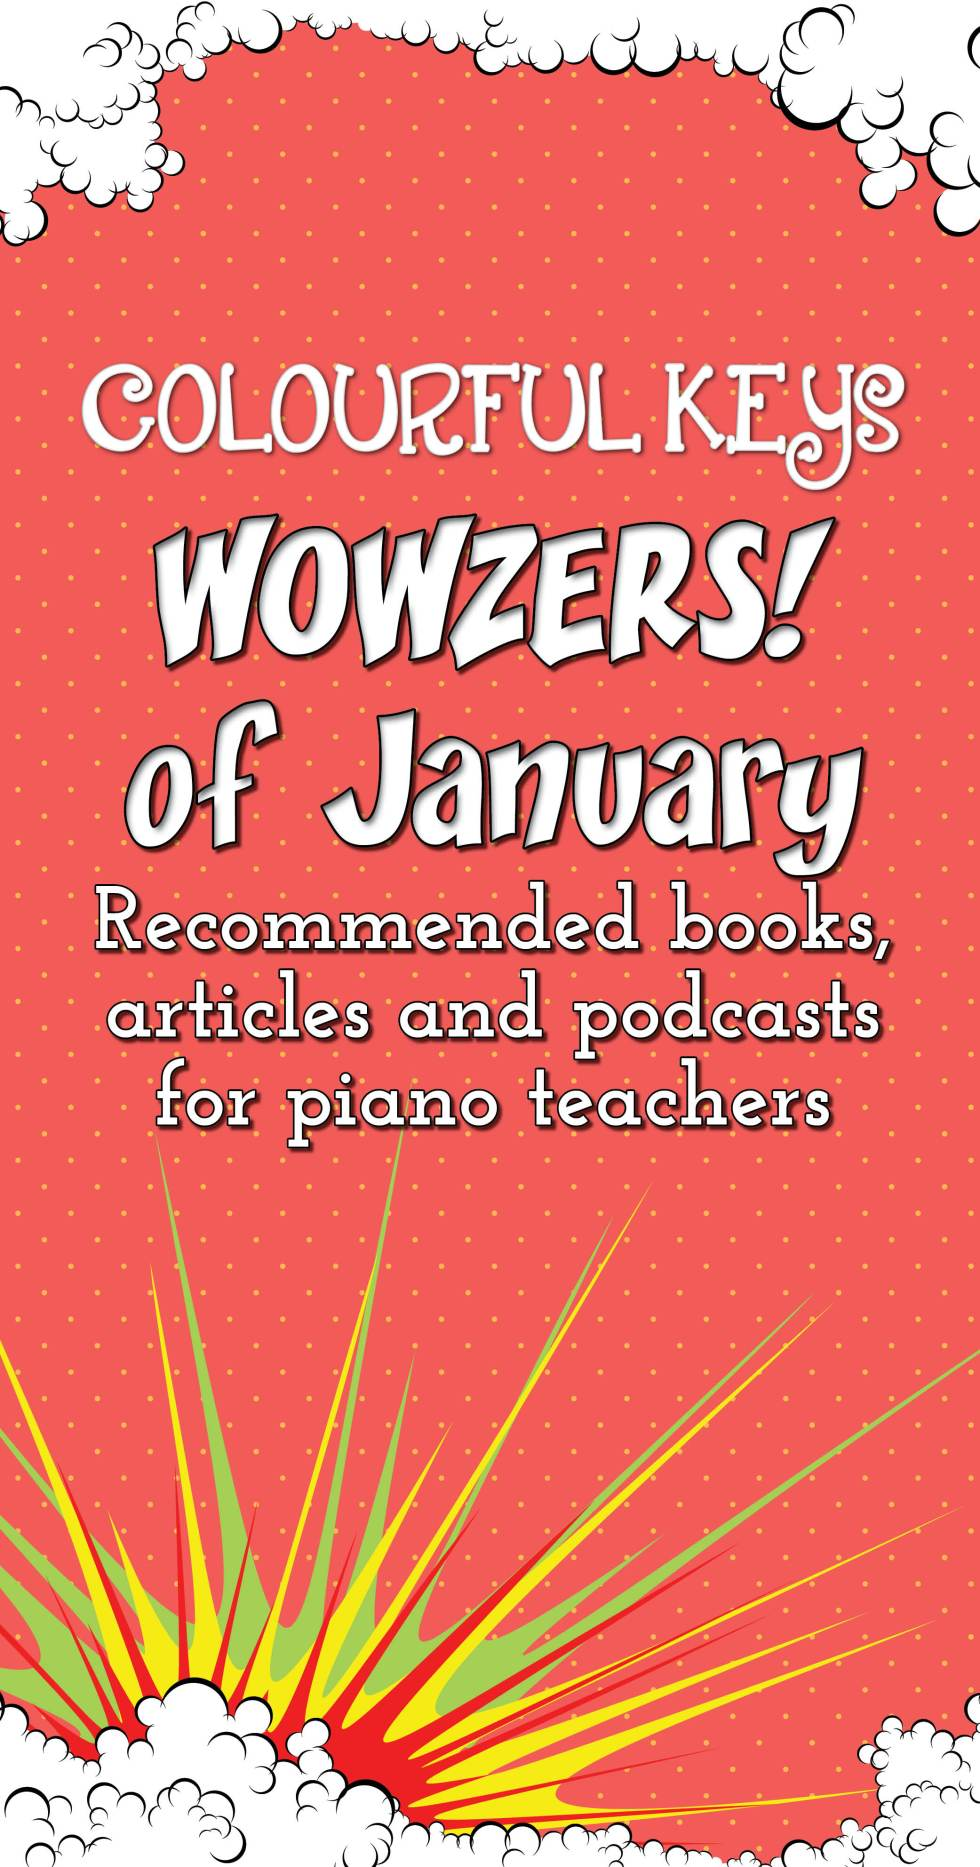 Top resources for piano teachers this month